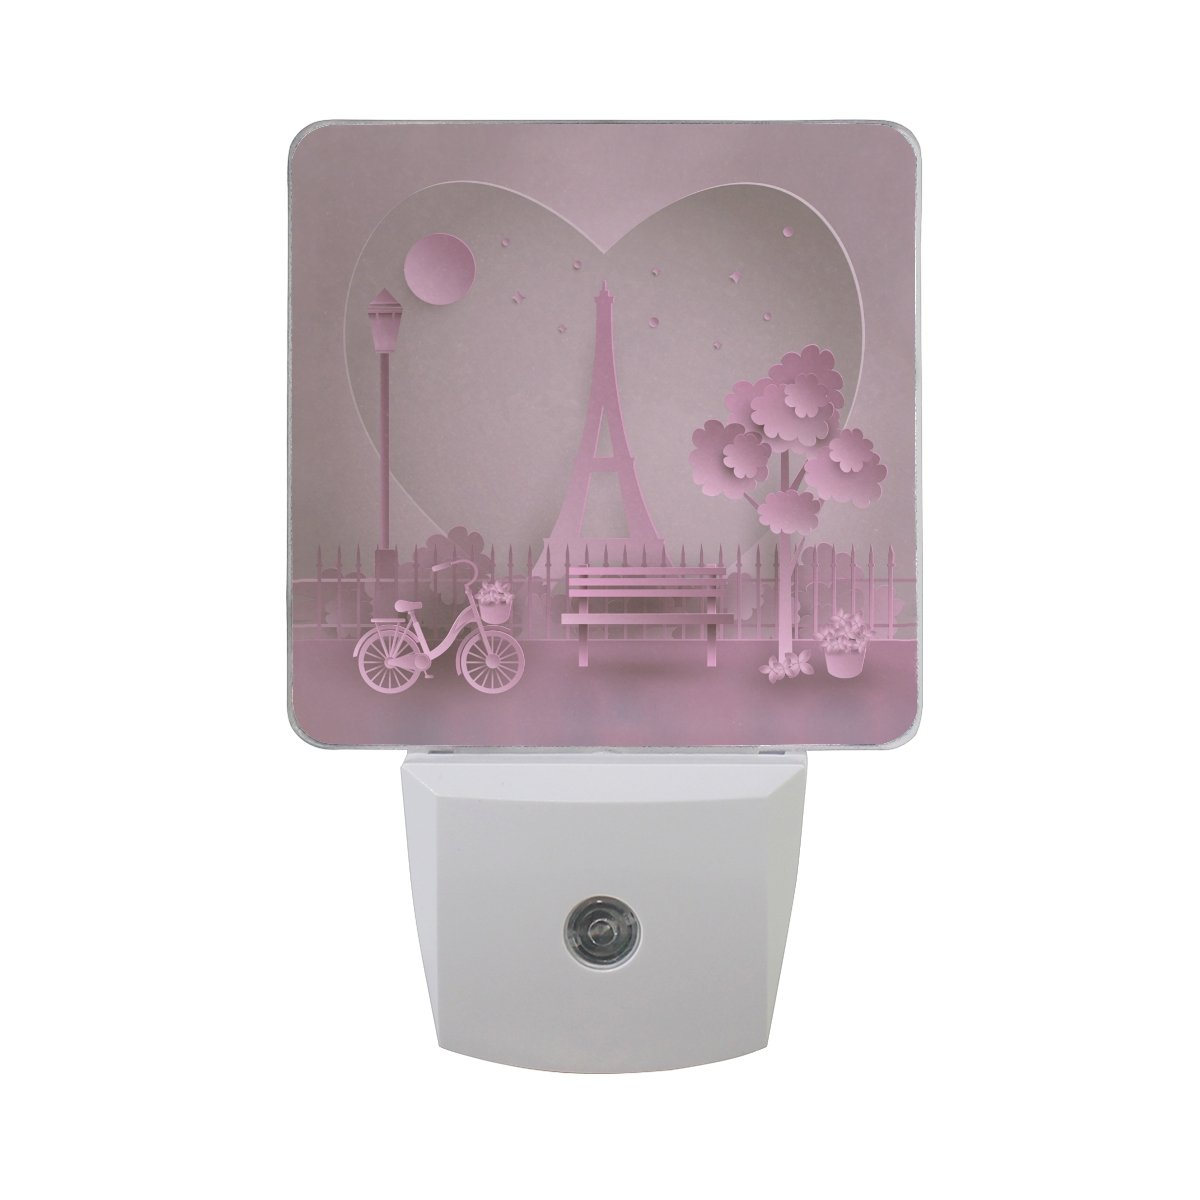 Naanle Set Of 2 Valentine Paris Love Eiffel Tower Pink Auto Sensor LED Dusk To Dawn Night Light Plug In Indoor for Adults